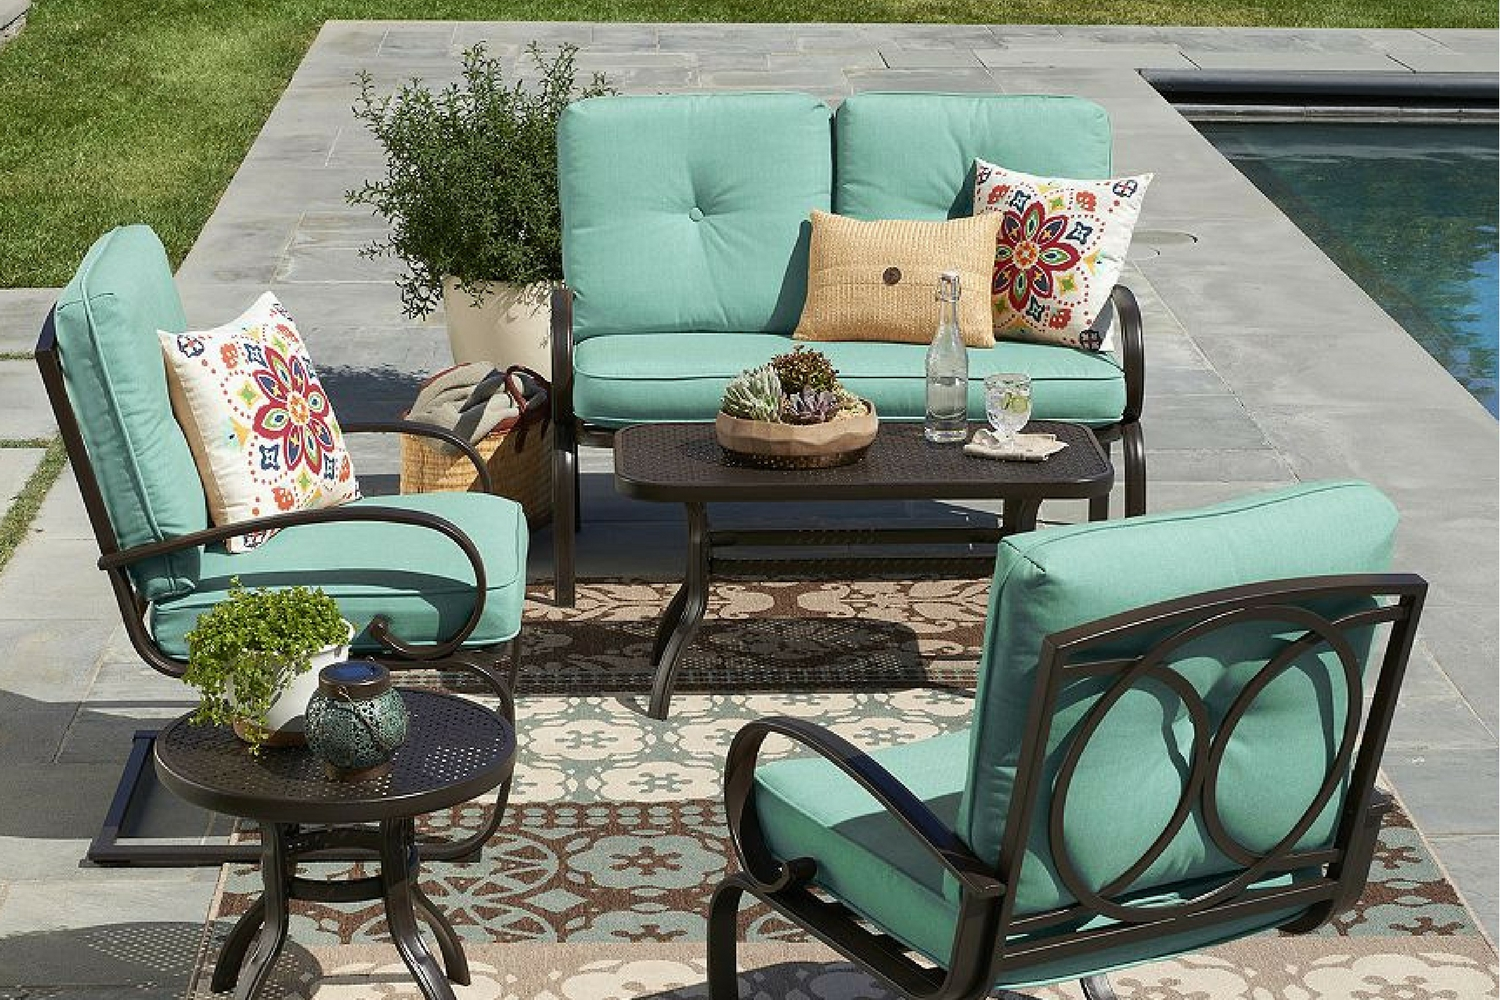 kohls outdoor chair cushions floor protectors is having a big sale on patio furniture right now